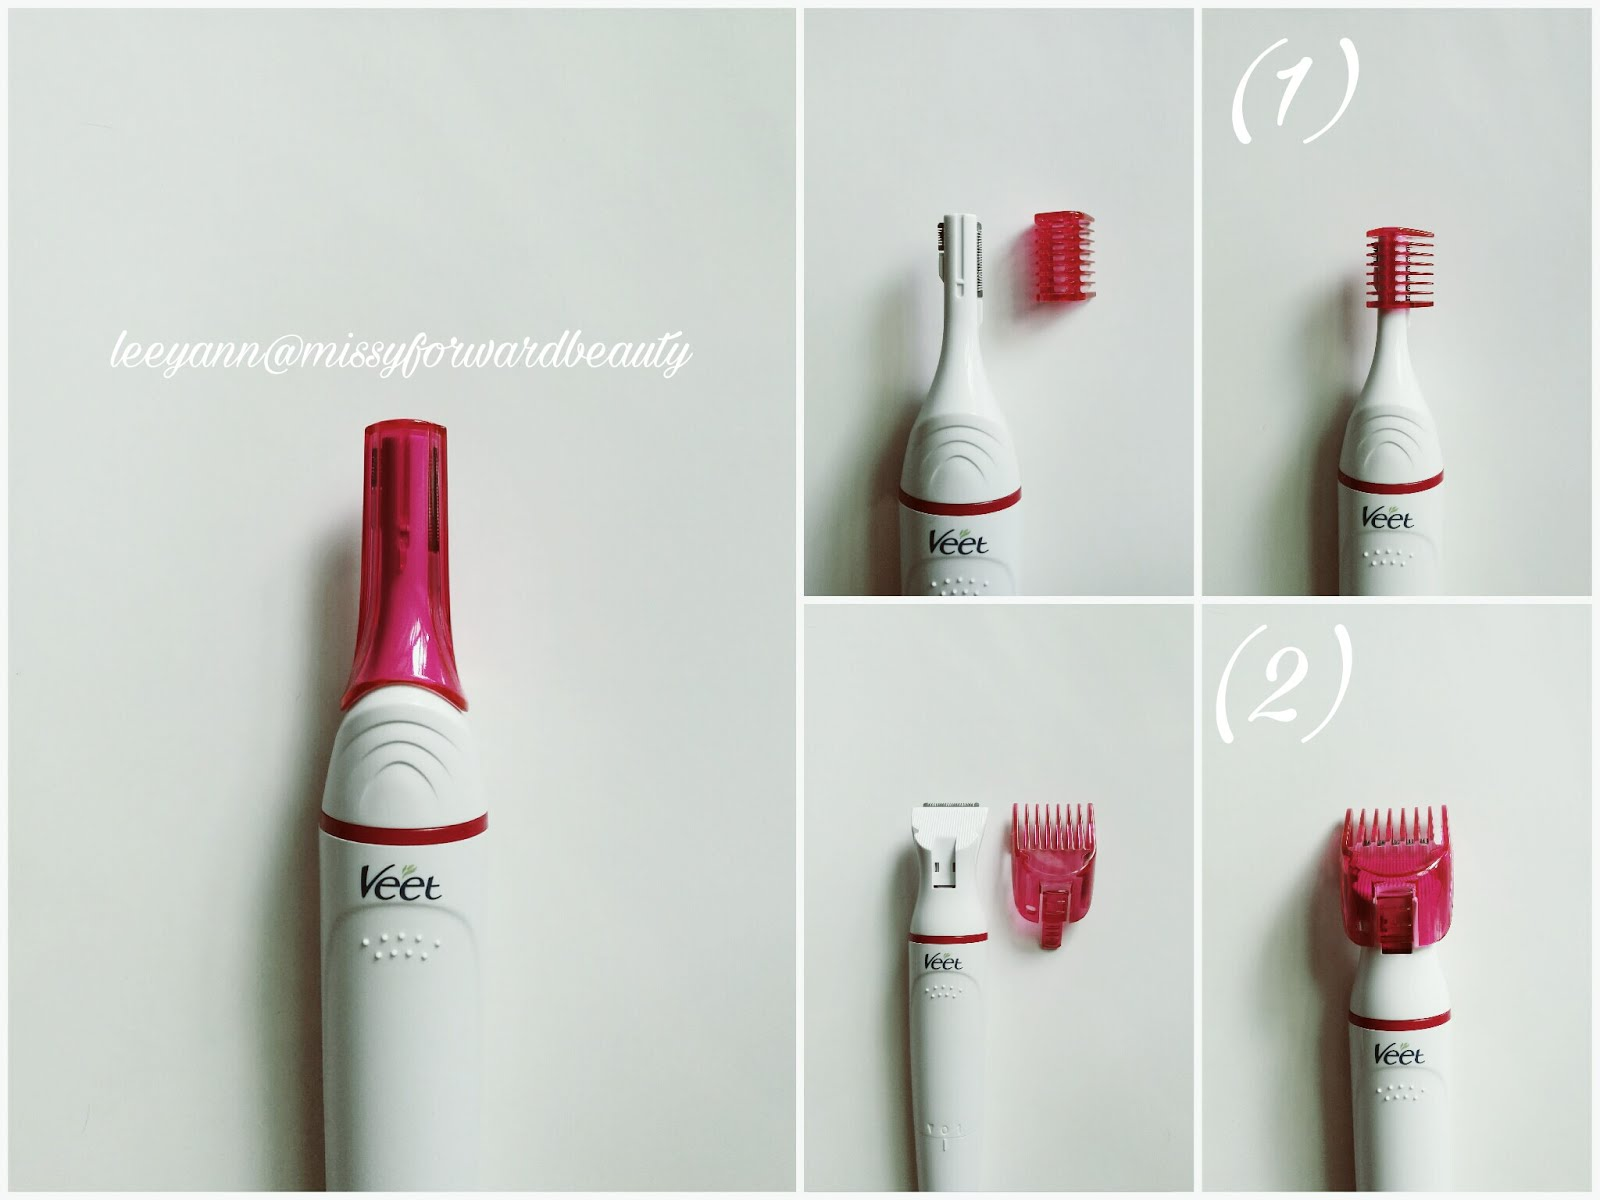 My New Veet Sensitive Touch Review Missy Forward Beauty